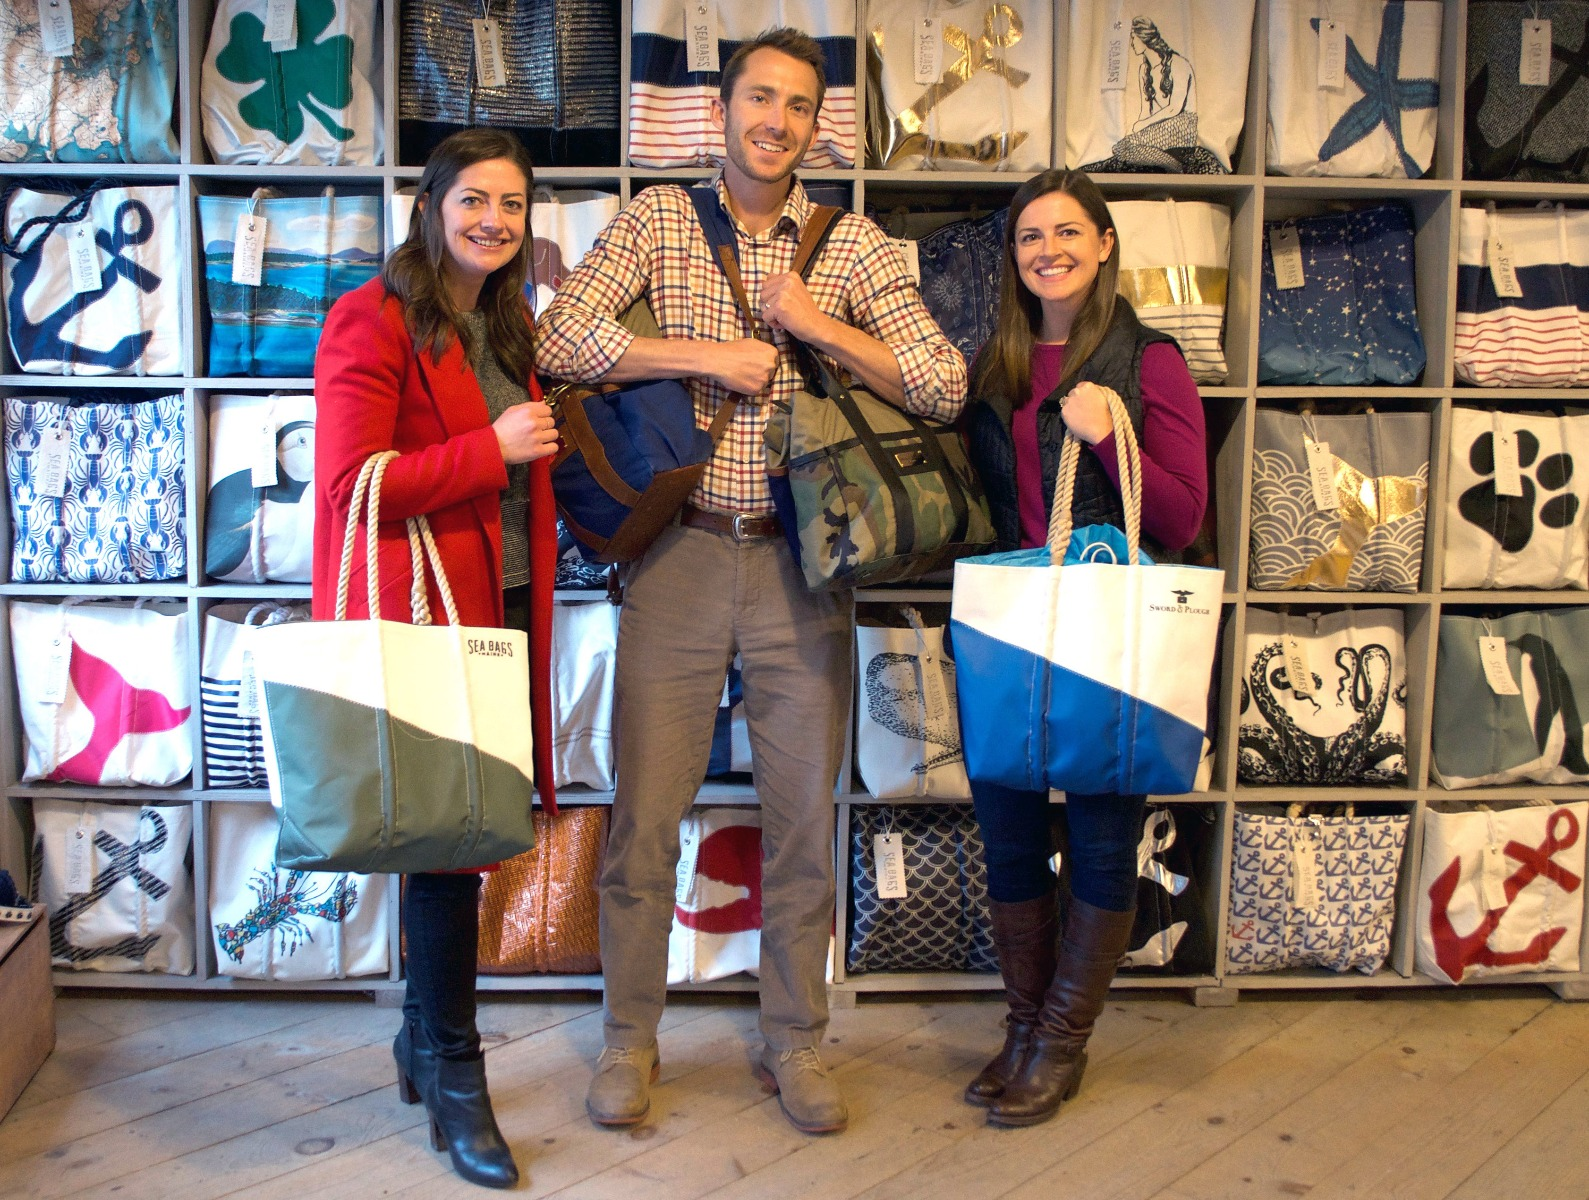 The Sword & Plough team at Sea Bags' flagship retail store in Portland